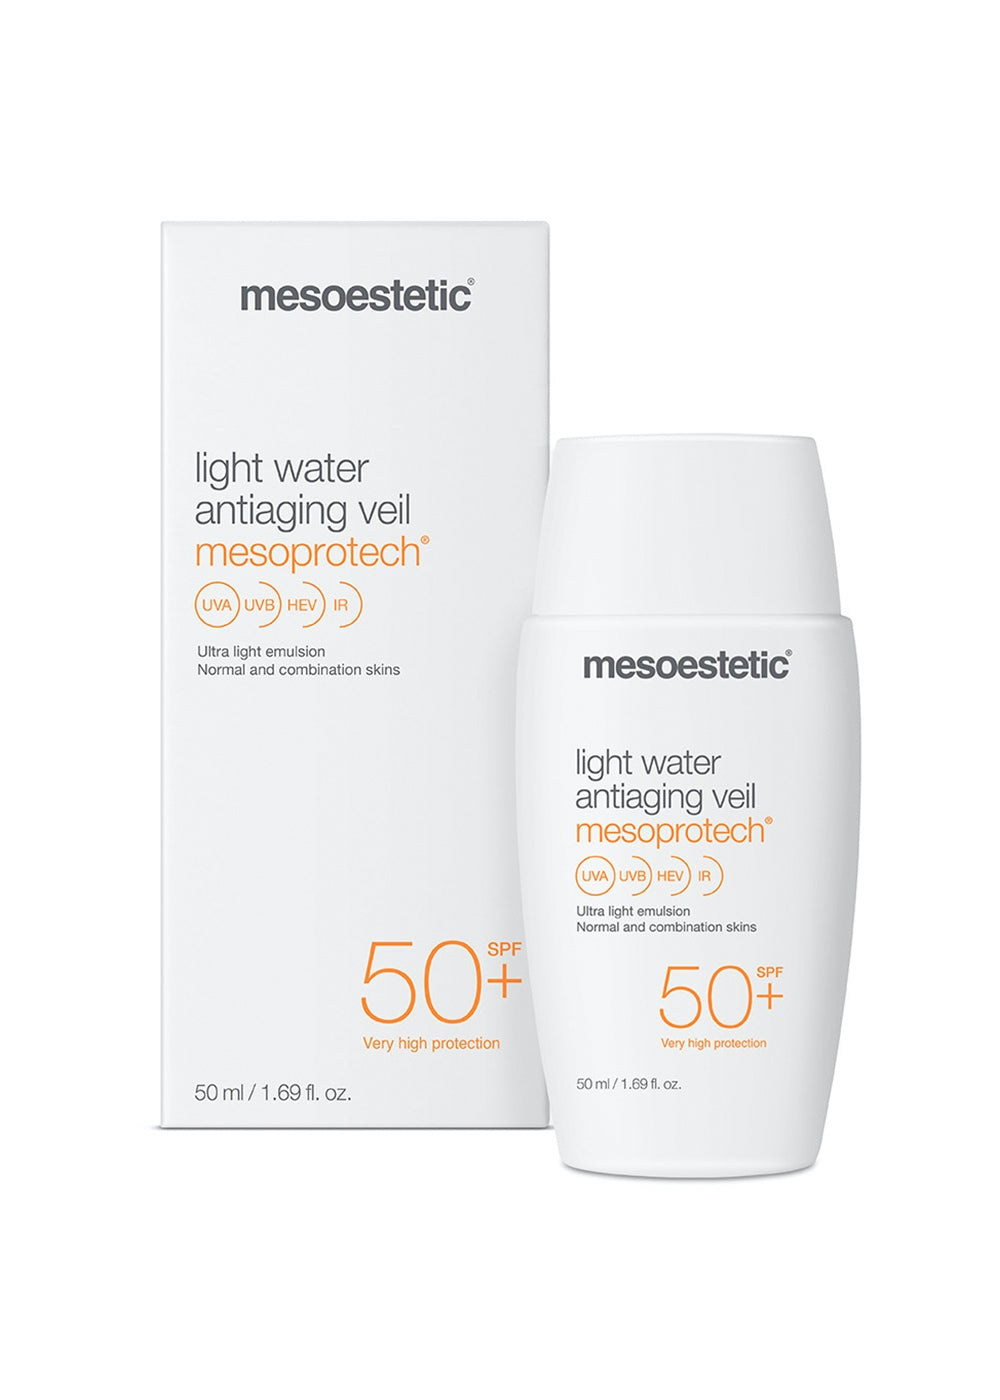 Mesoestetic Mesoprotech Light Water Veil 50+